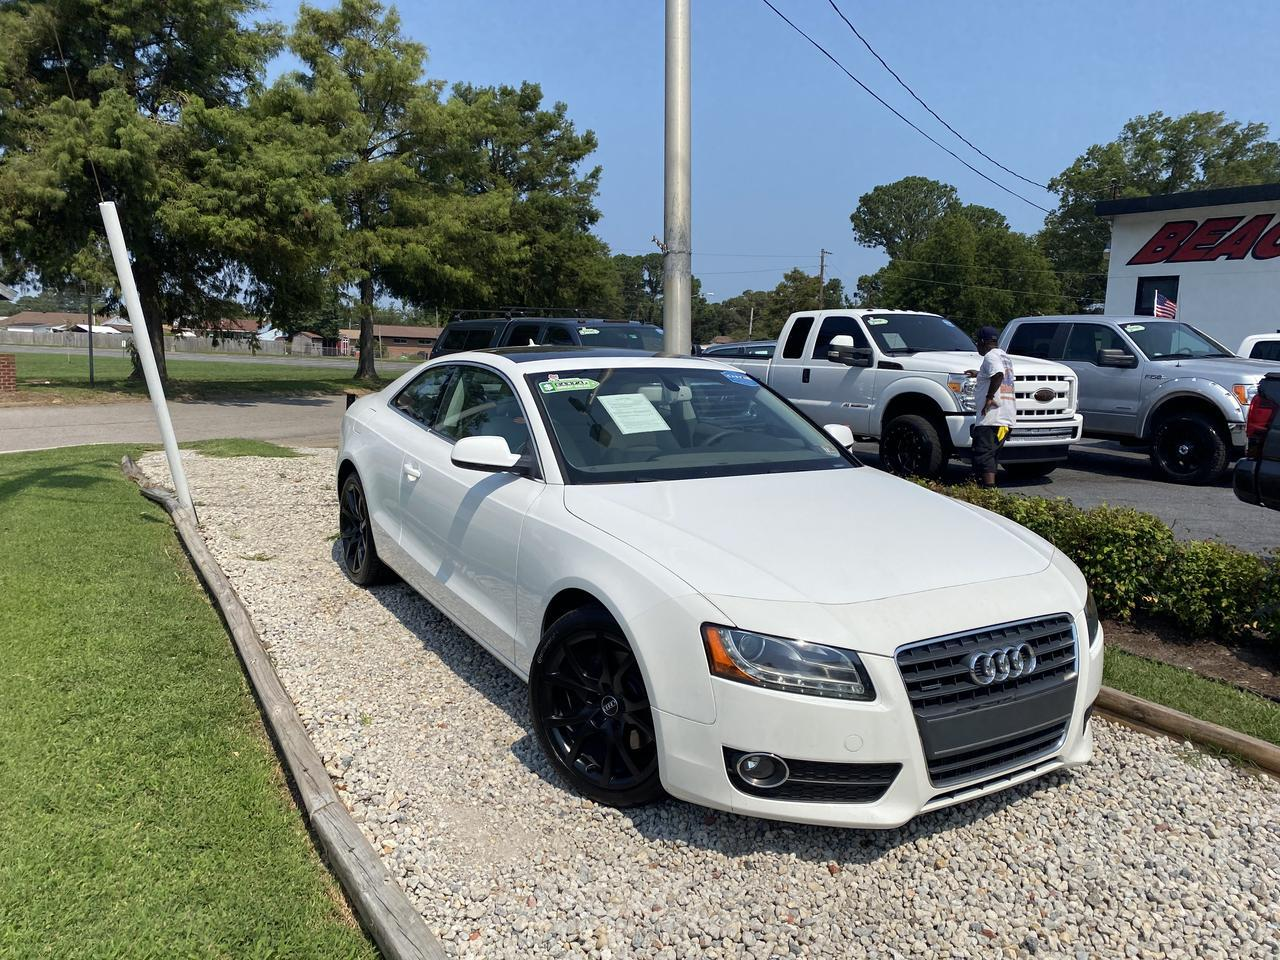 2012 AUDI A5 2.0T QUATTRO PREMIUM +, WARRANTY, LEATHER, SUNROOF, NAV, HEATED SEATS, BLUETOOTH, 1 OWNER, CLEAN!